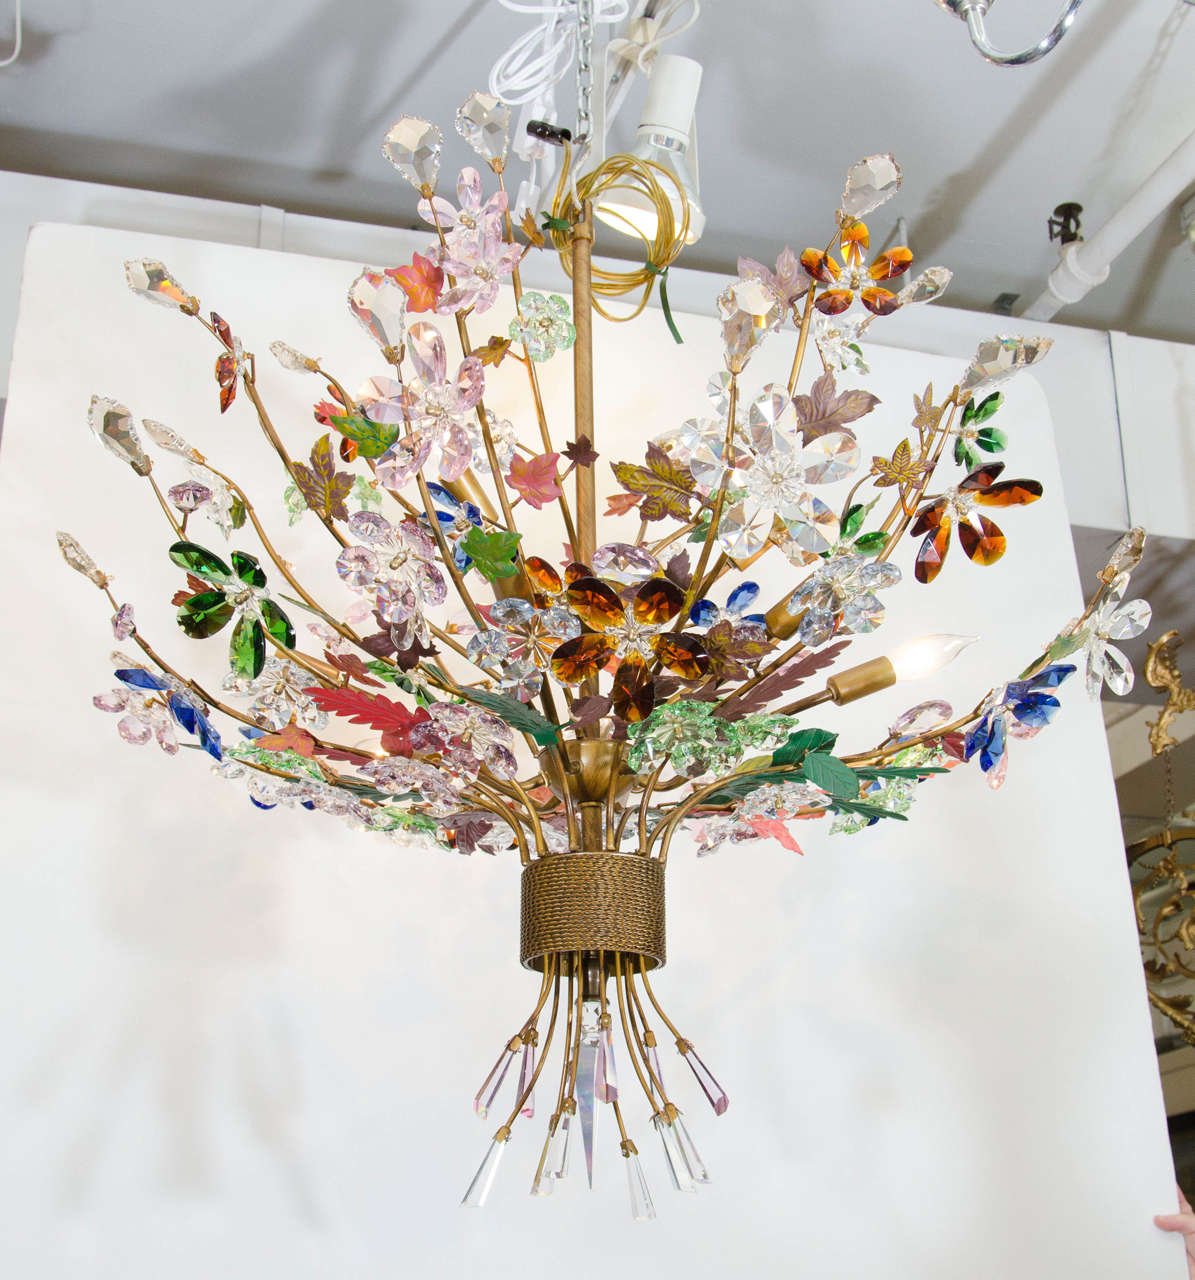 A Vintage Italian Murano Glass Chandelier In The Form Of Bouquet Flowers With Tole